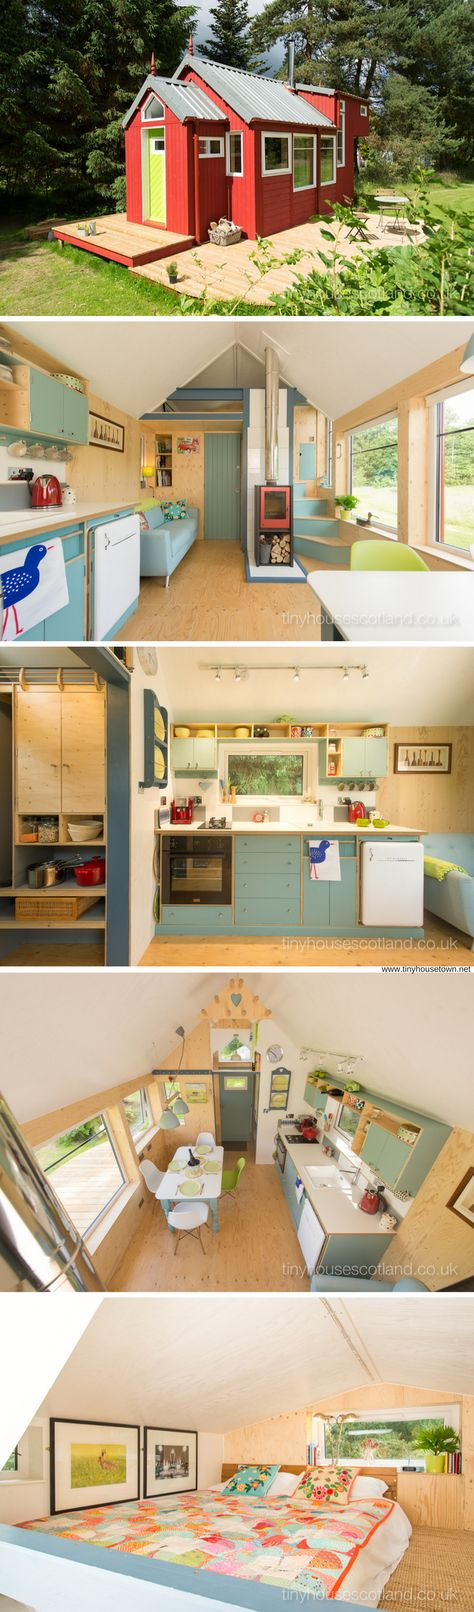 278 best Tiny Homes images on Pinterest